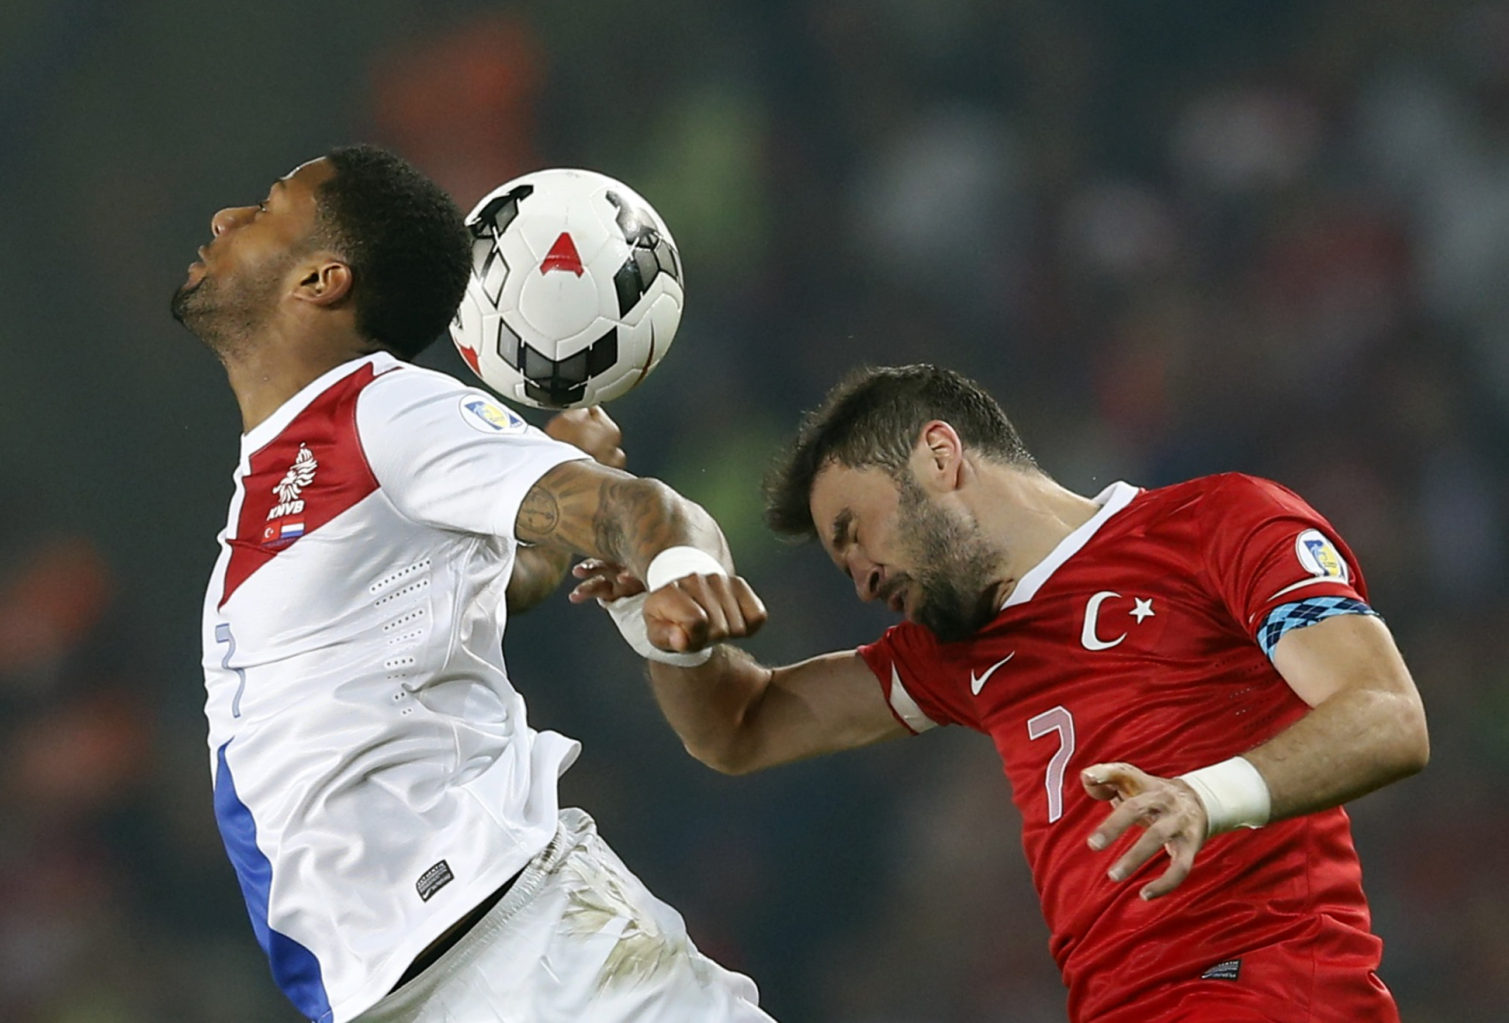 Netherlands' Lens and Turkey's Gonul jump for header during 2014 World Cup qualifying soccer match in Istanbul